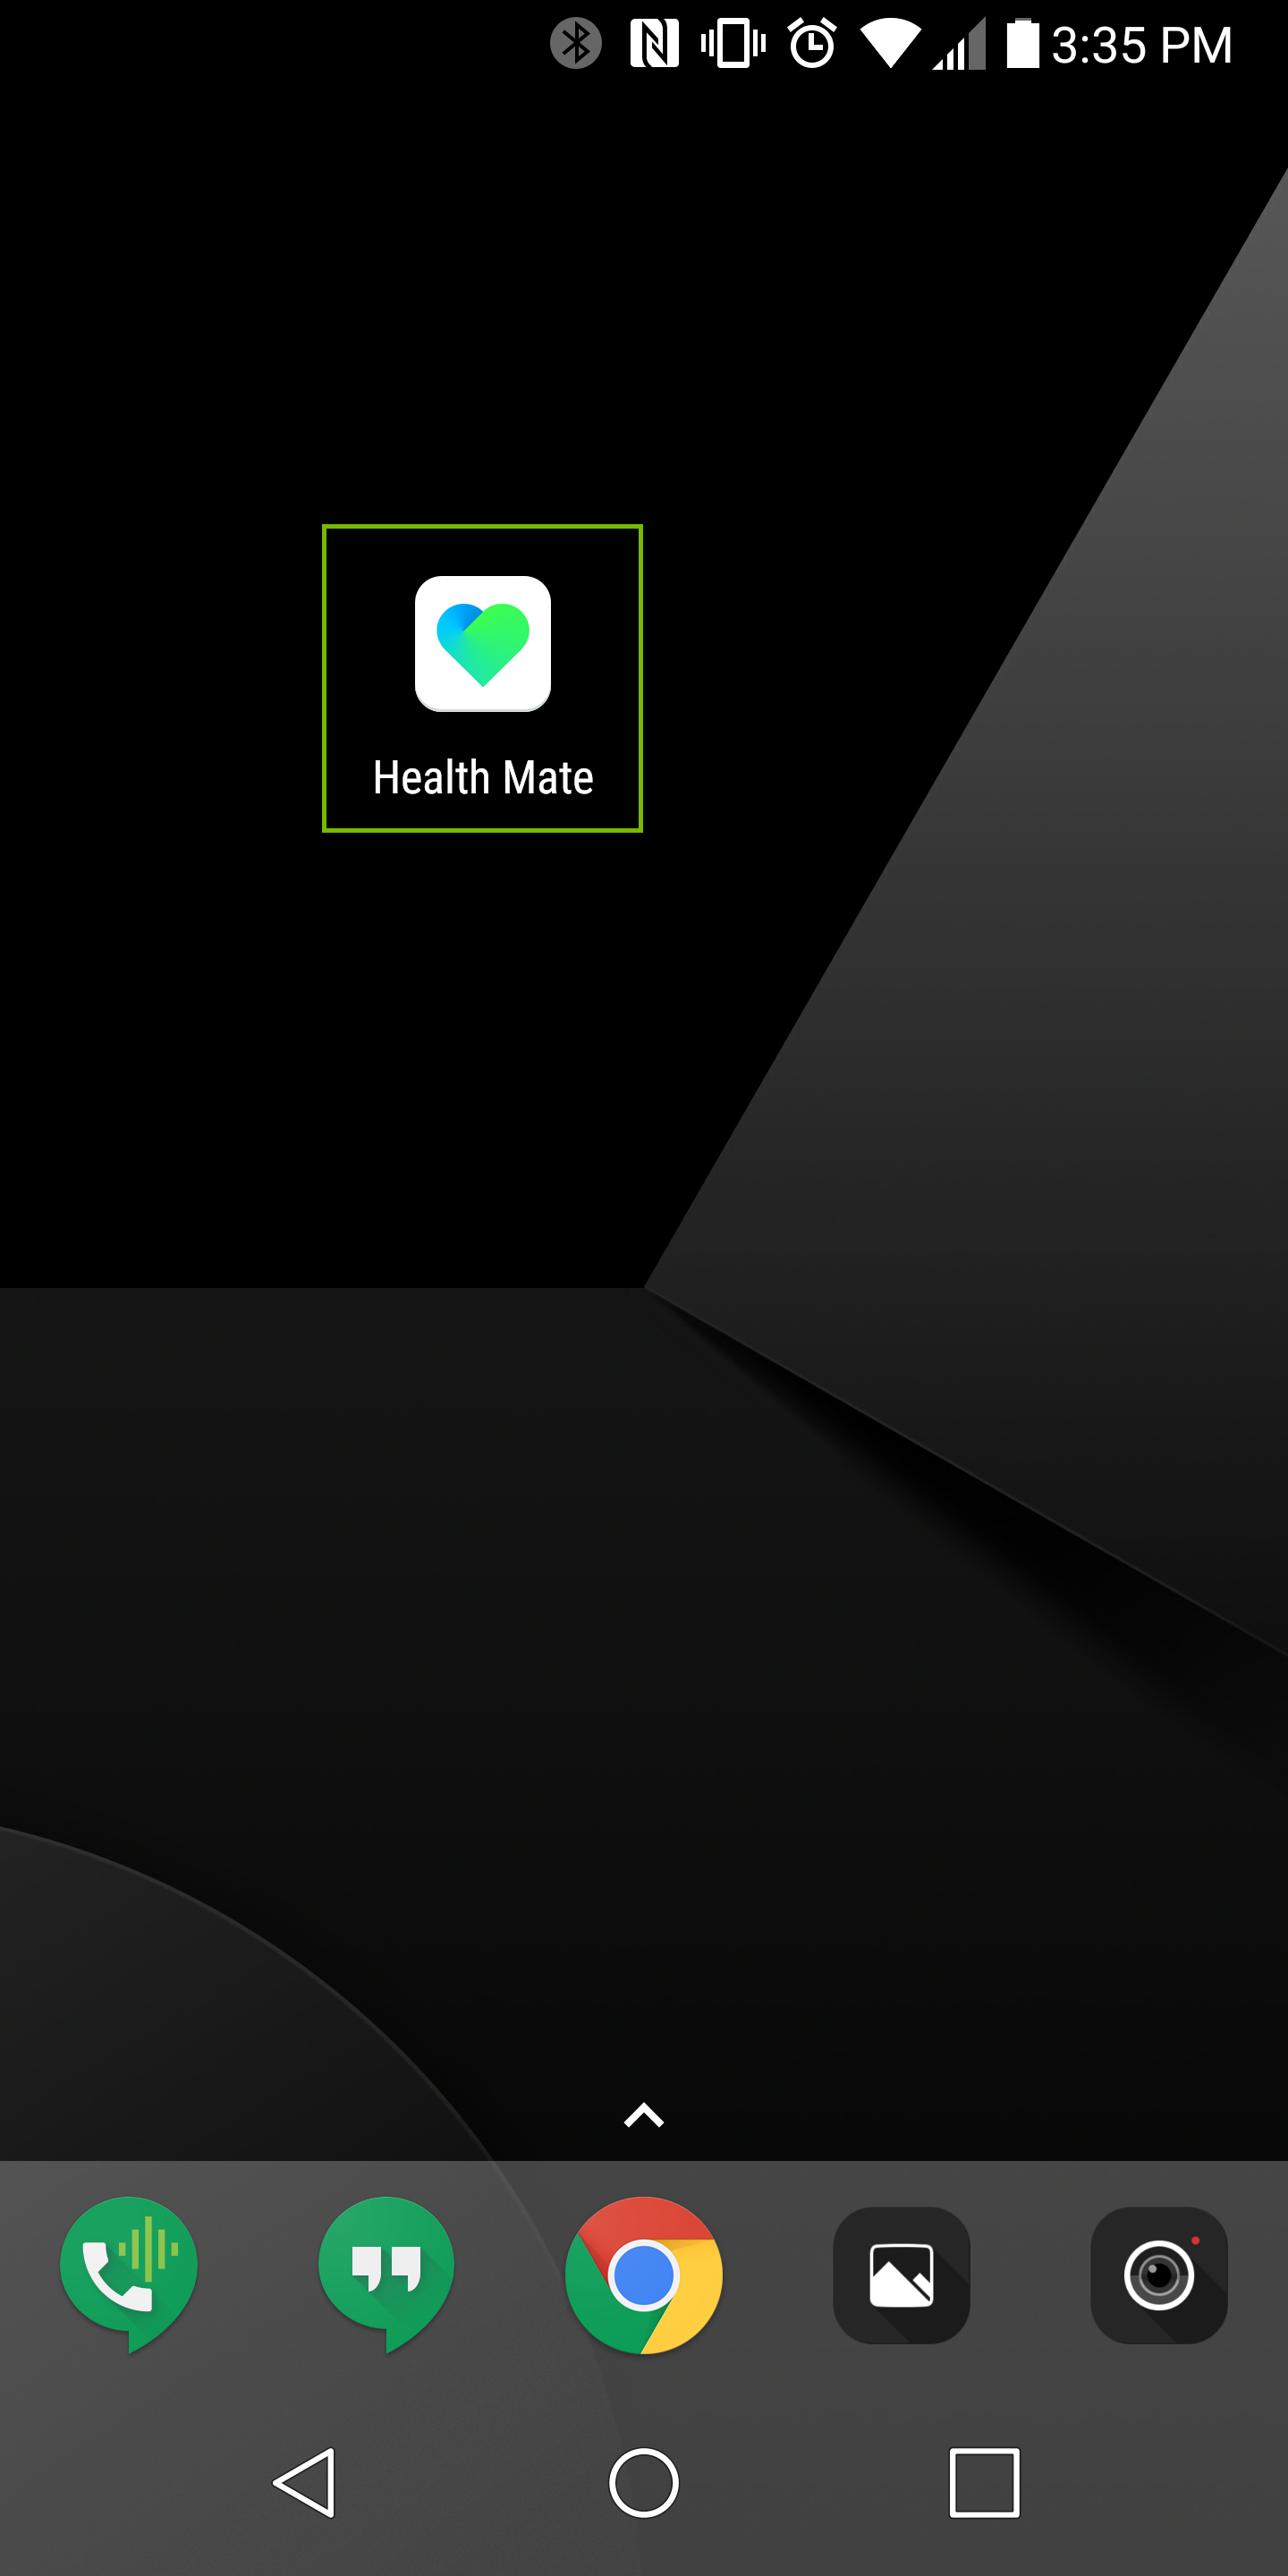 Health Mate Icon